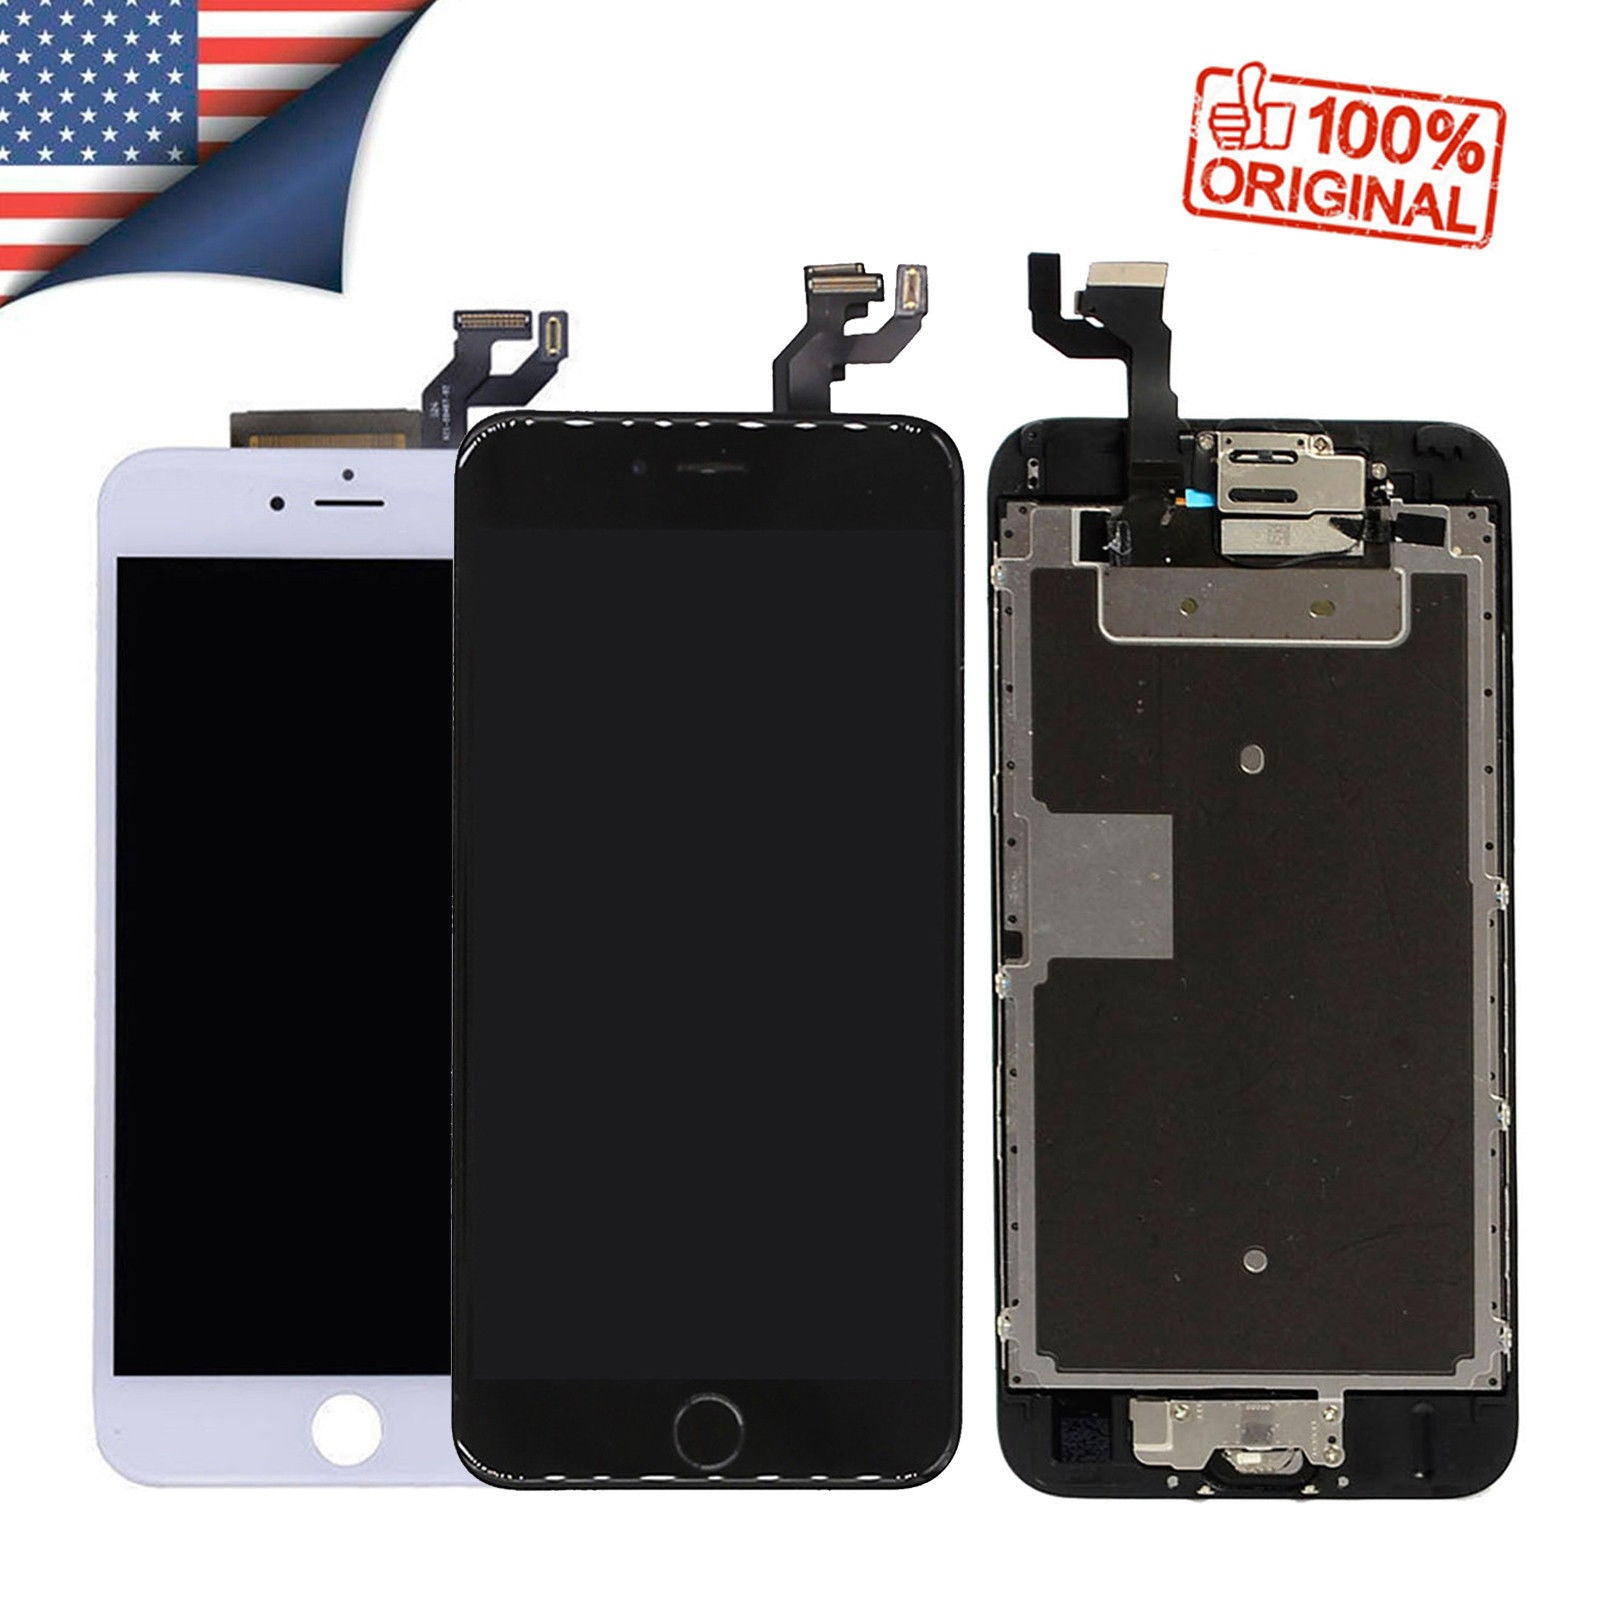 timeless design 189c5 ad09f OEM iPhone 5 6 6s Plus 7 8 Lcd Digitizer Complete Screen Replacement ...